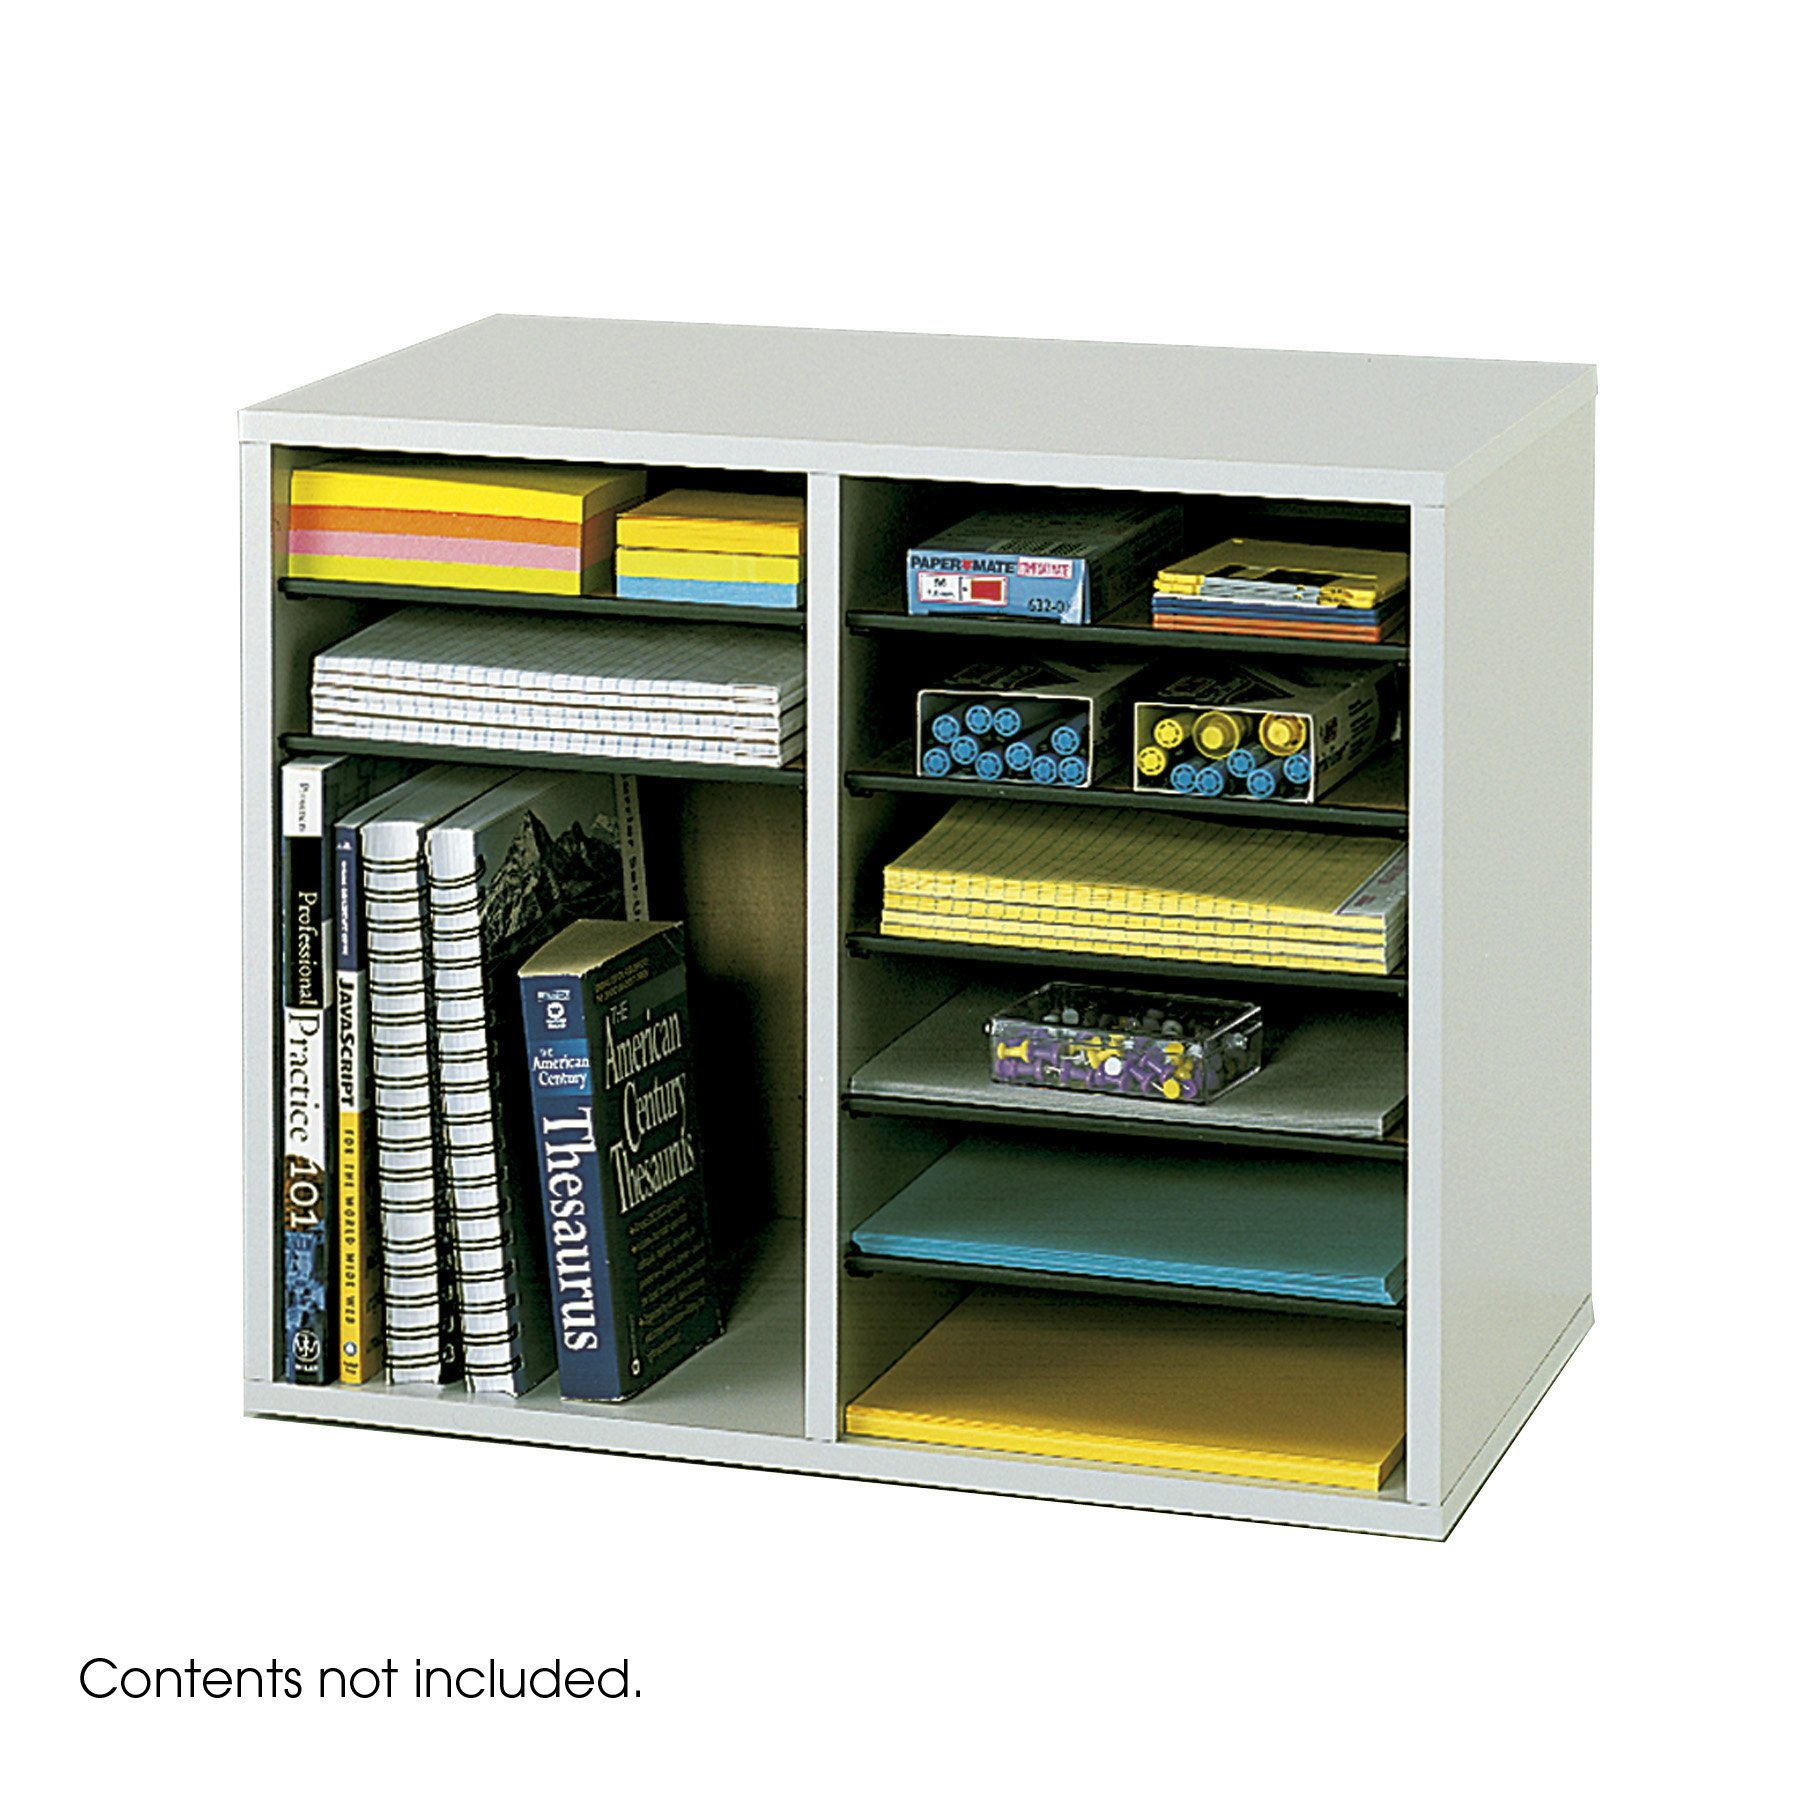 Safco Products Wood Adjustable Literature Organizer, 12 Compartment 9420GR, Gray, Durable Construction, Removable Shelves